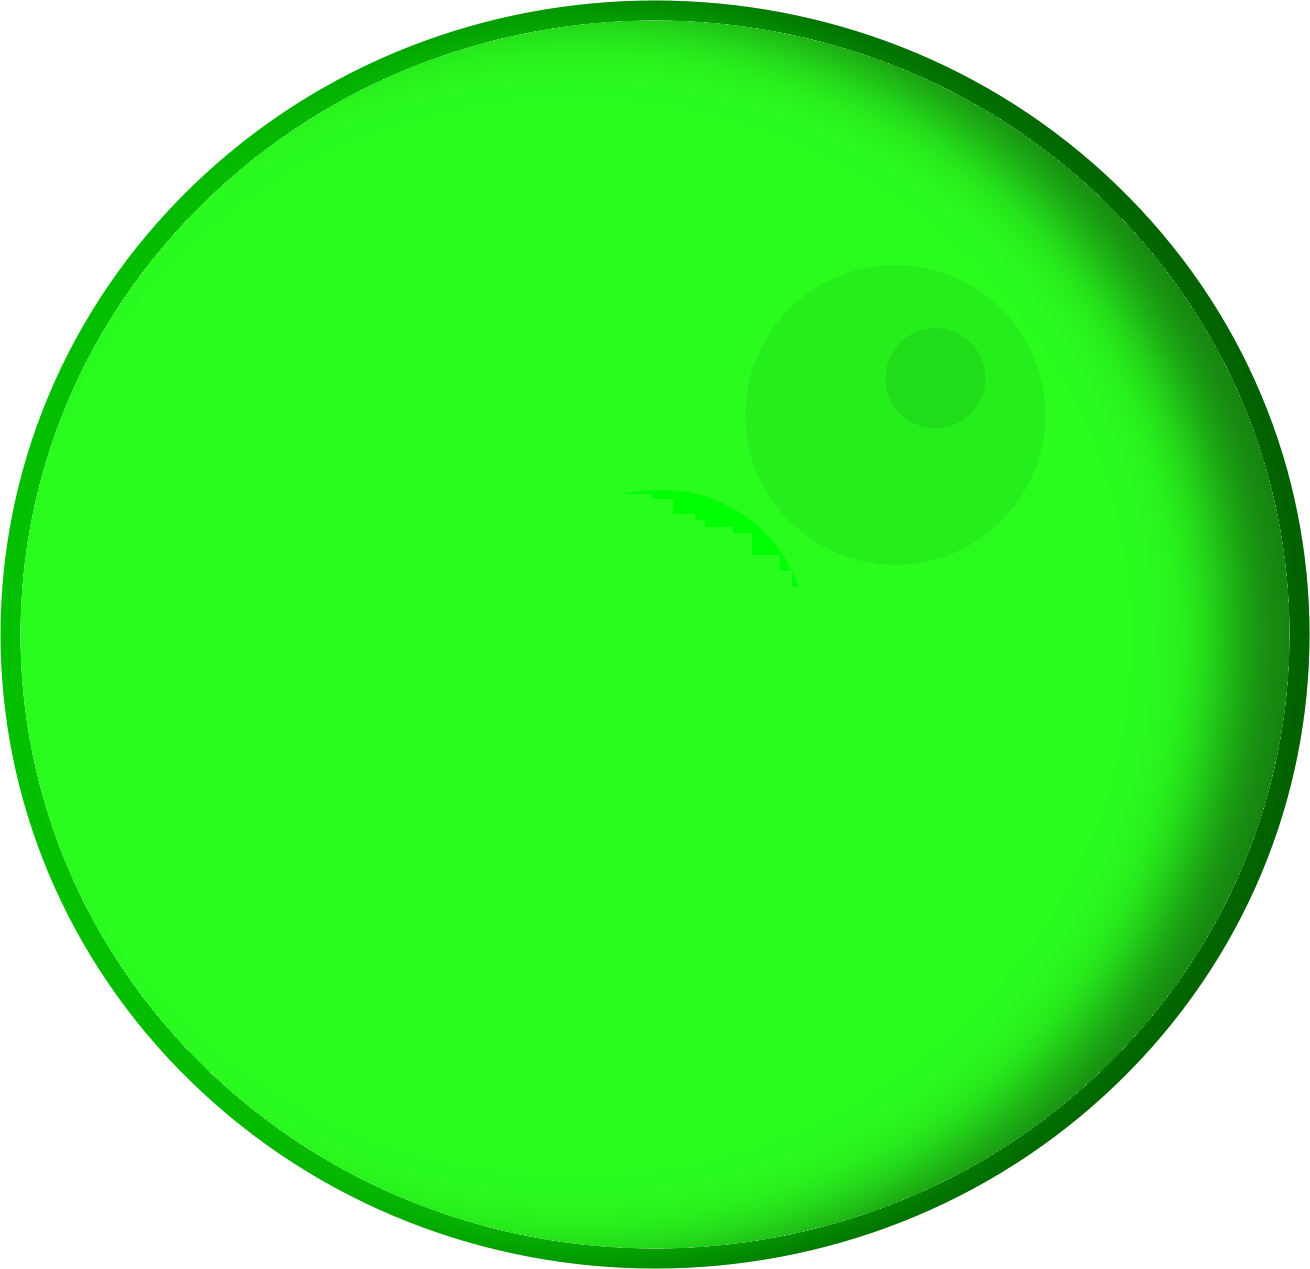 image free library Image sjj png object. Lime clipart circle.